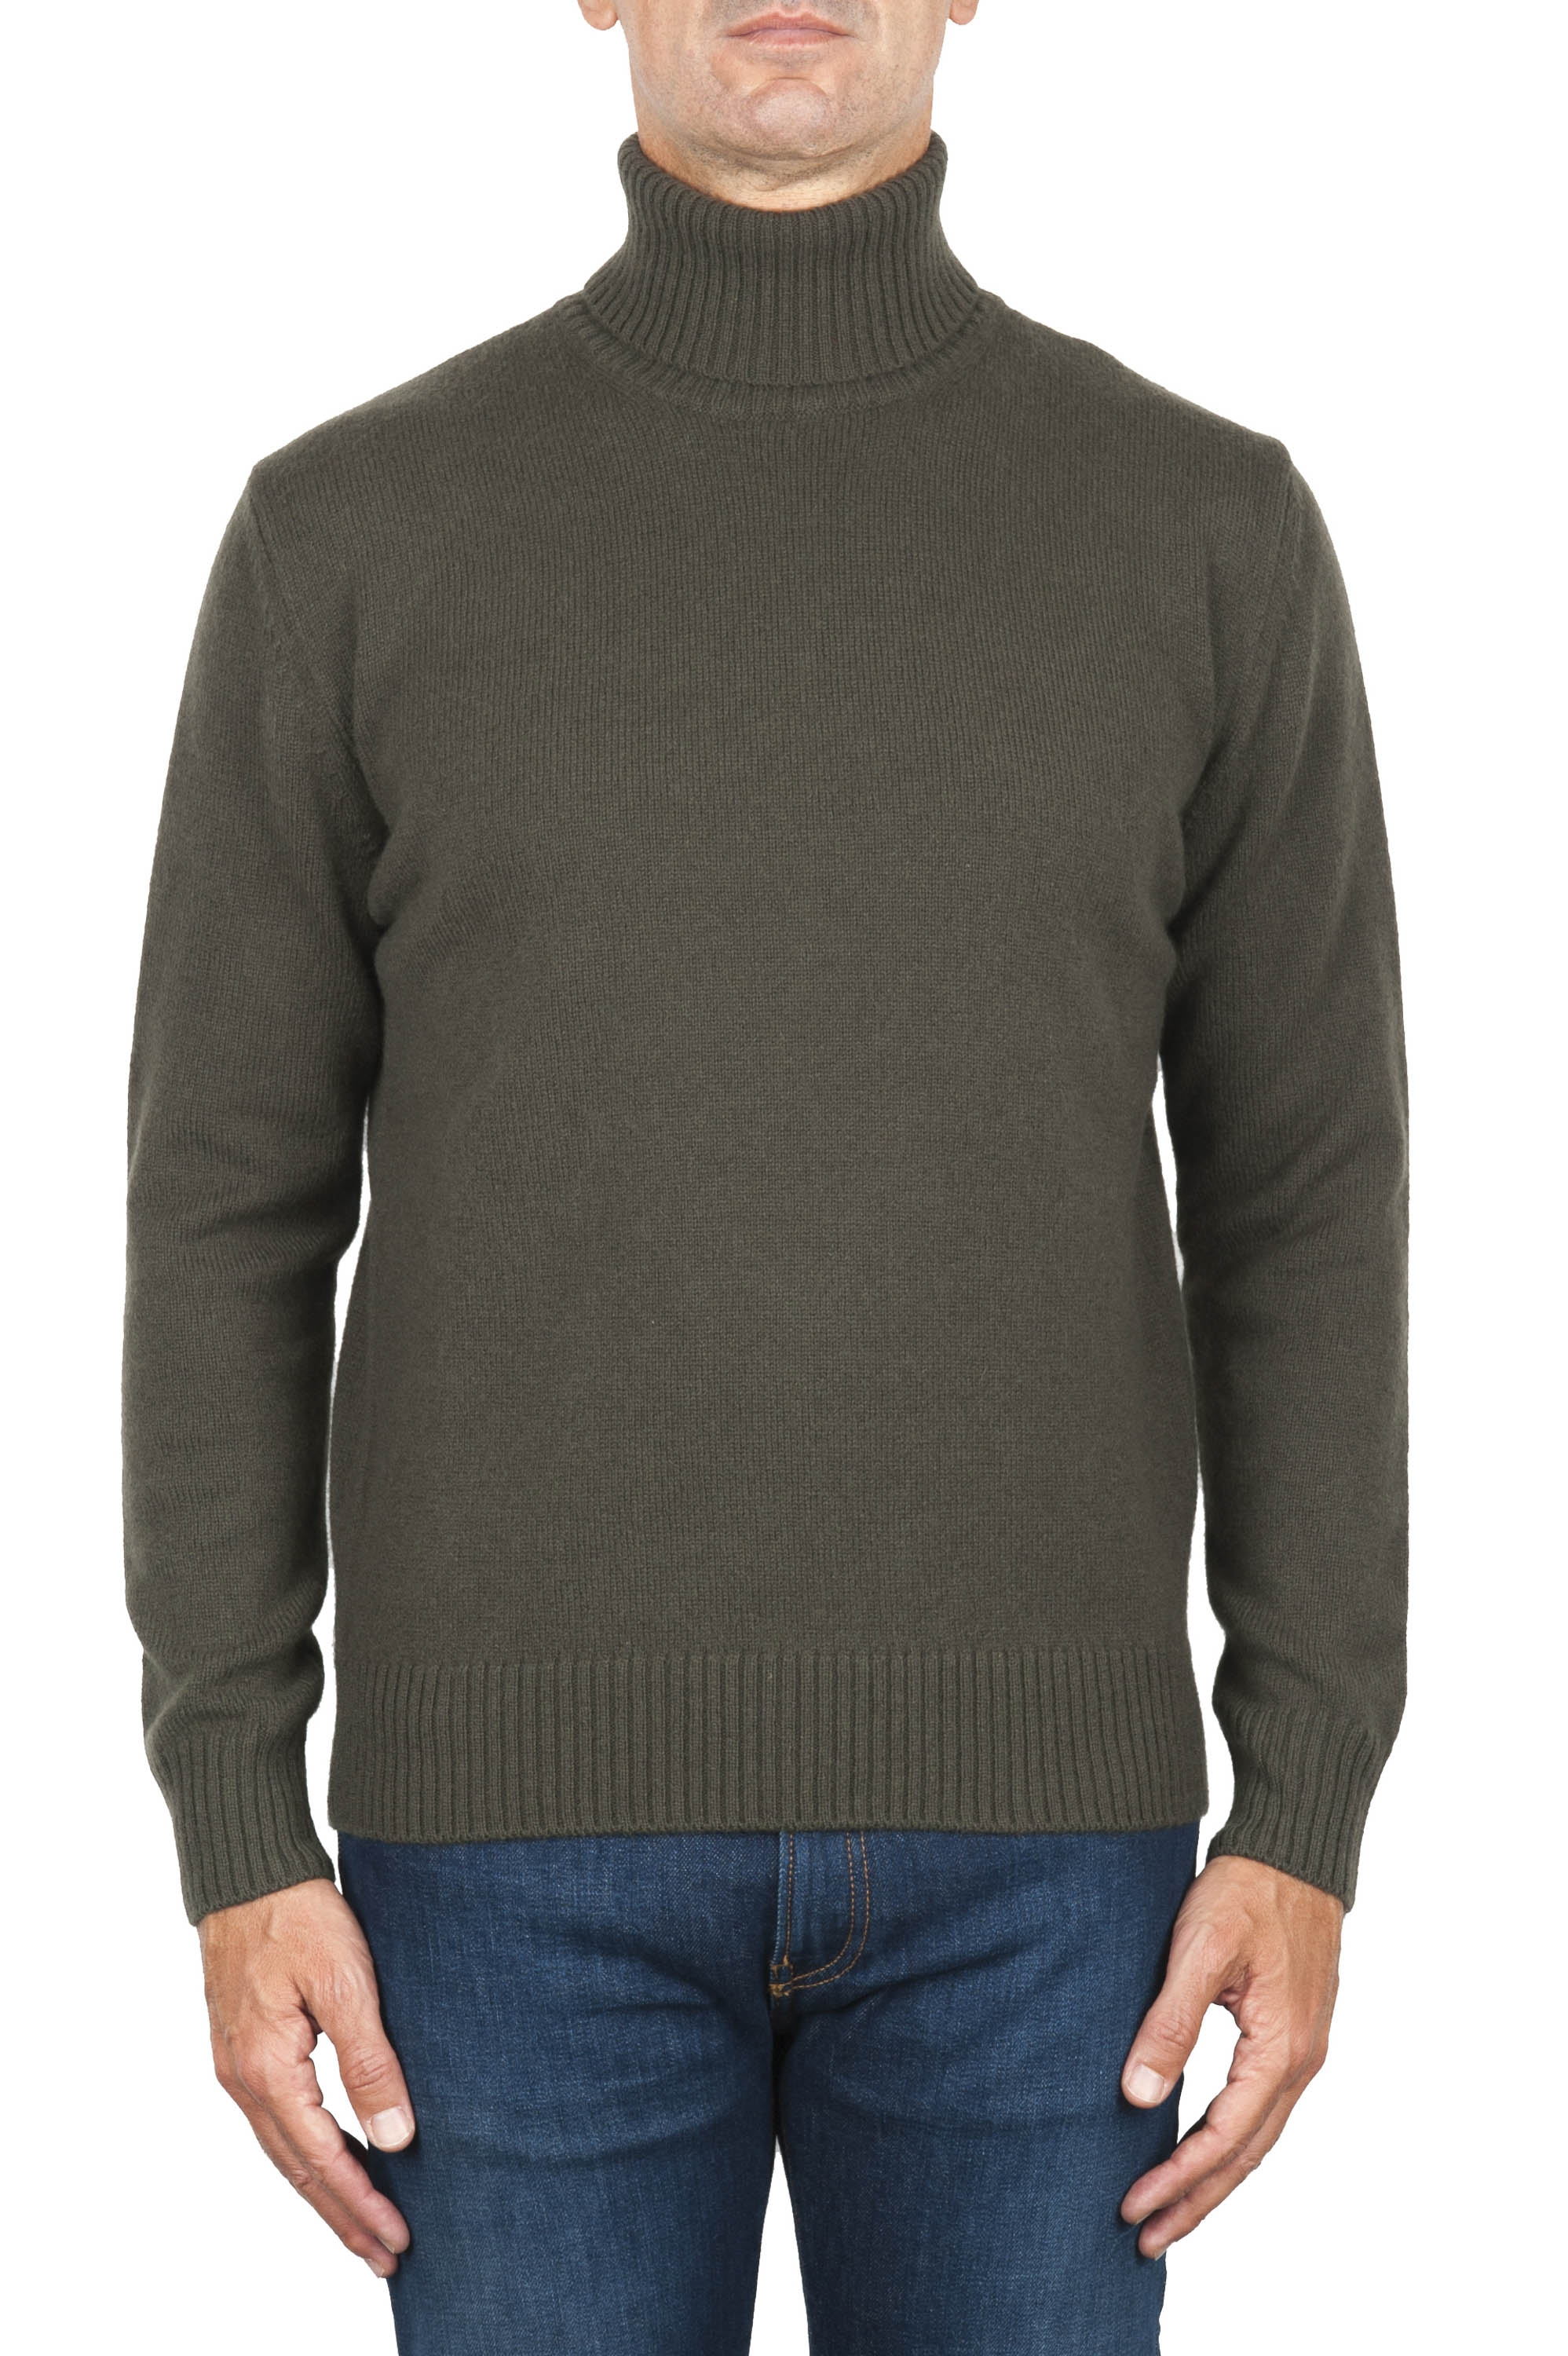 SBU 01859_19AW Green roll-neck sweater in wool cashmere blend 01